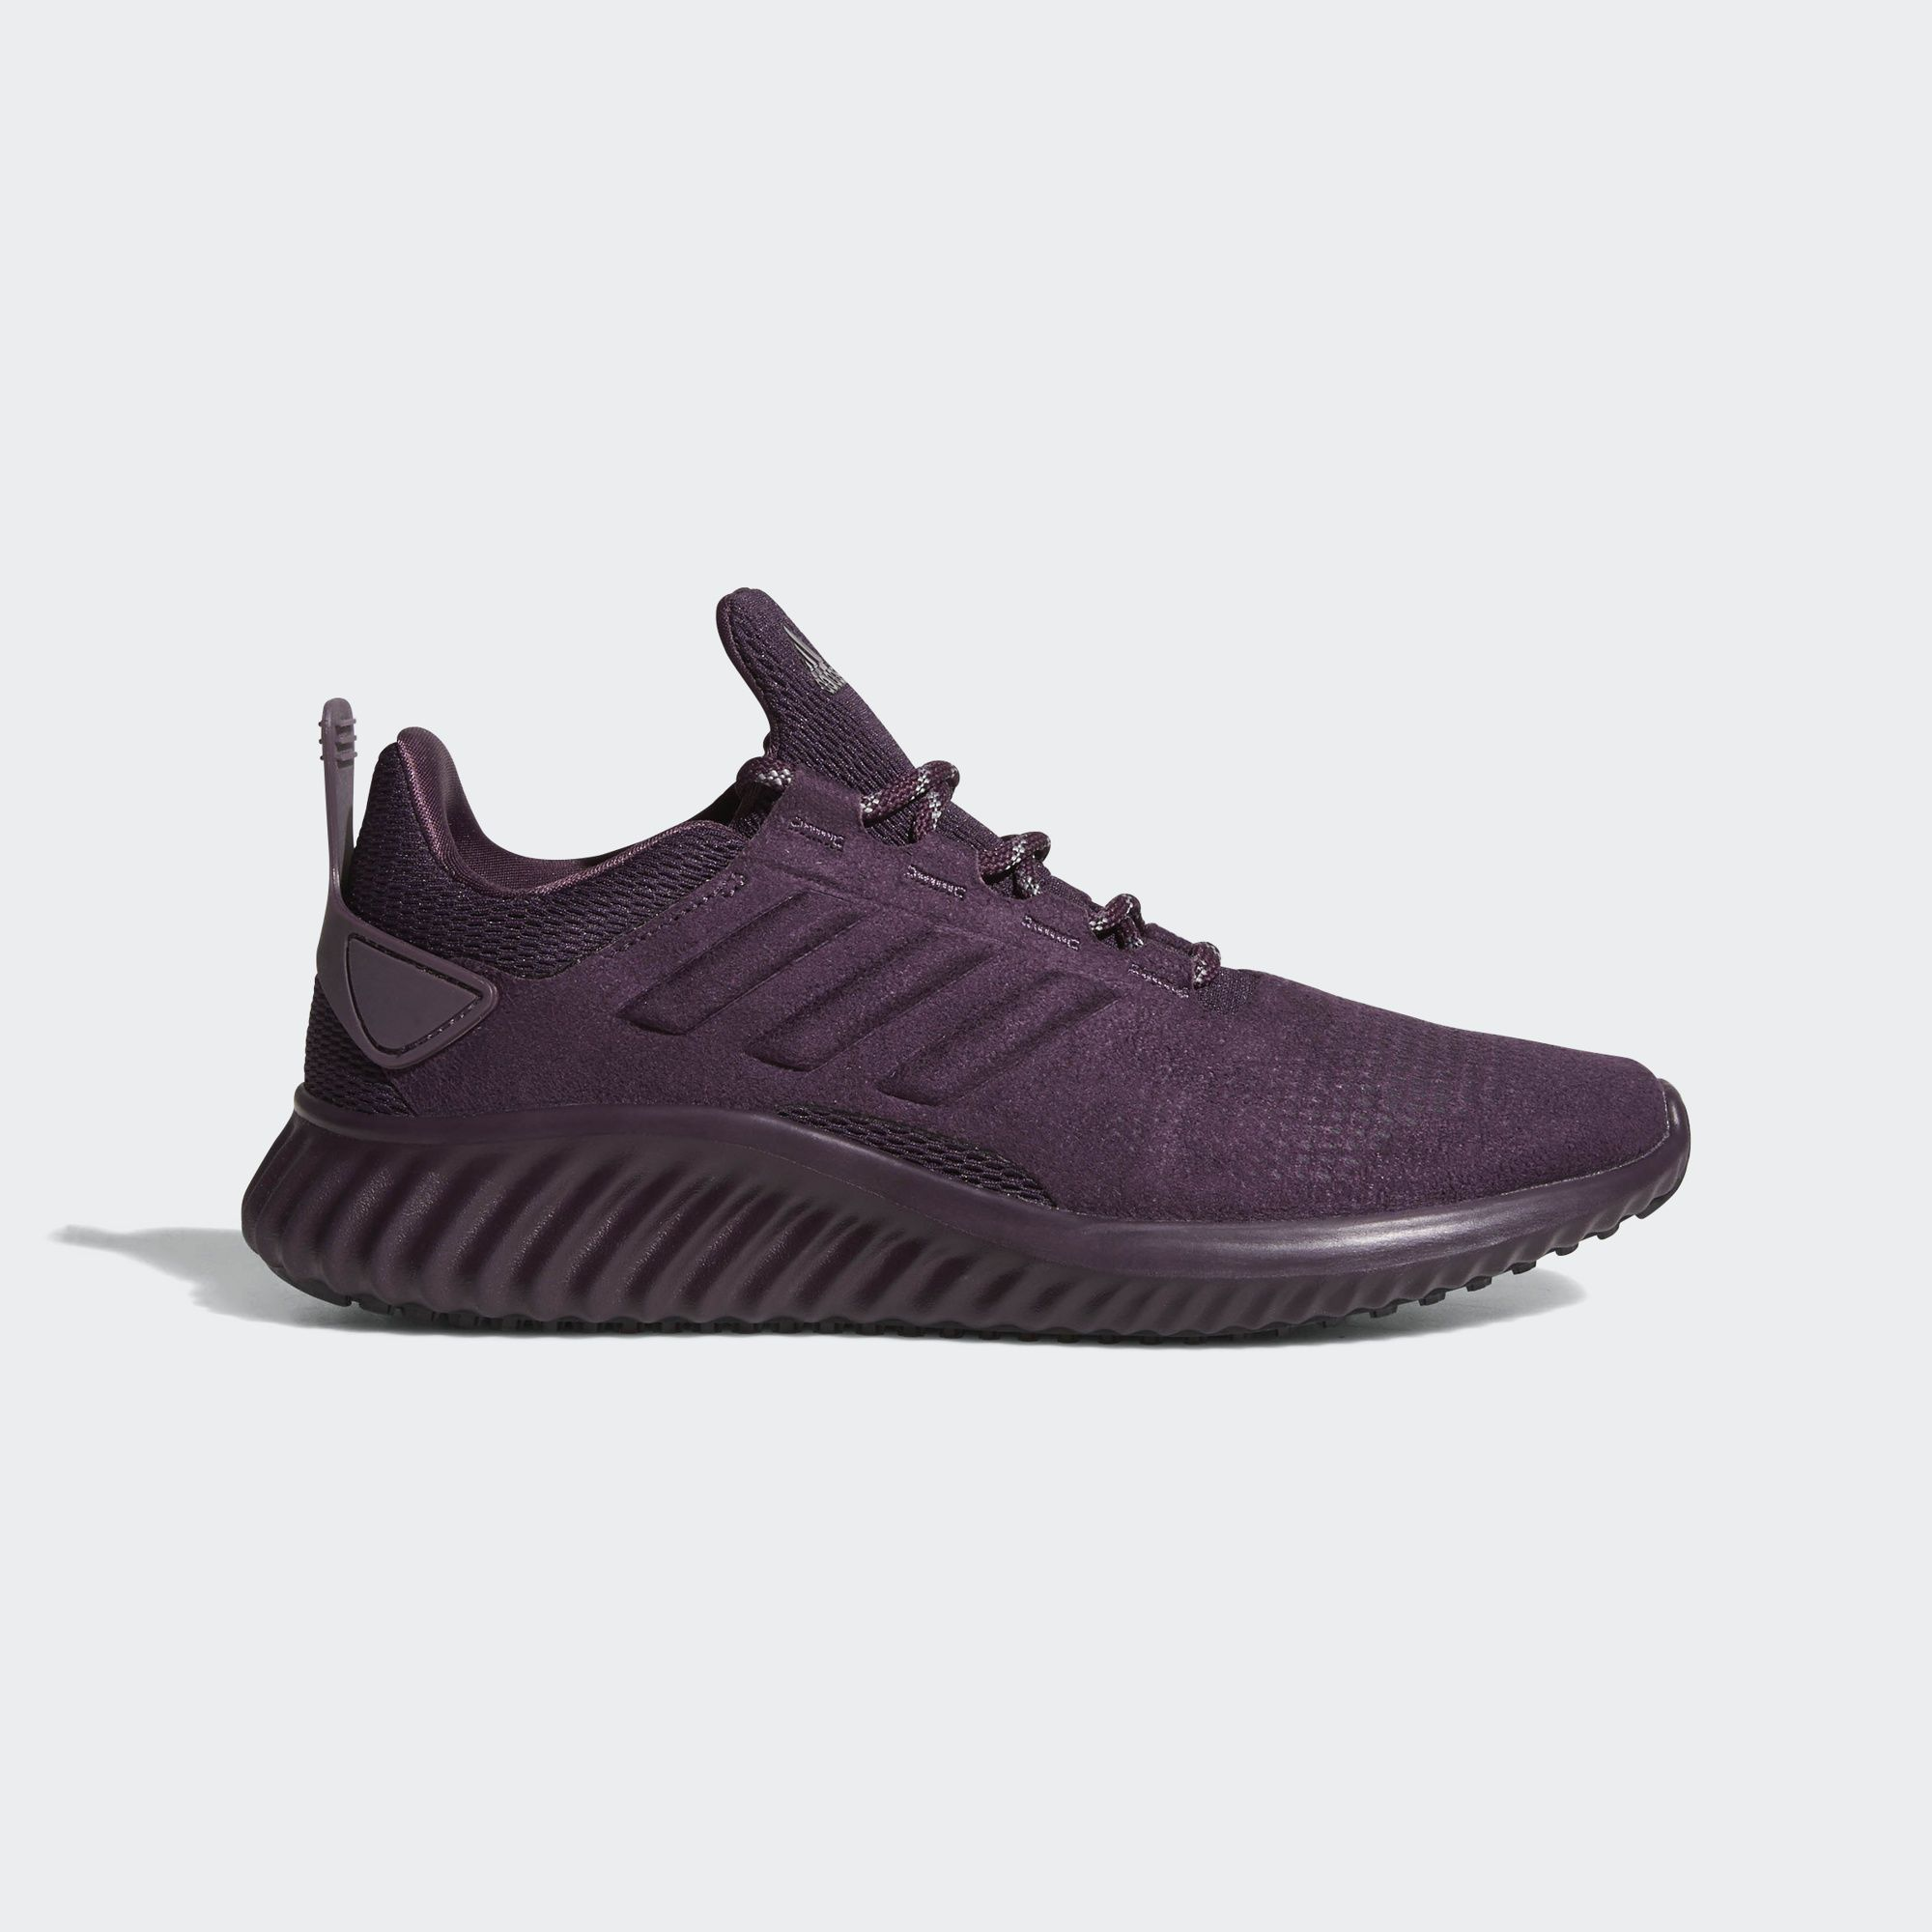 adidas Alphabounce City Shoes Women'sKeep up your cross